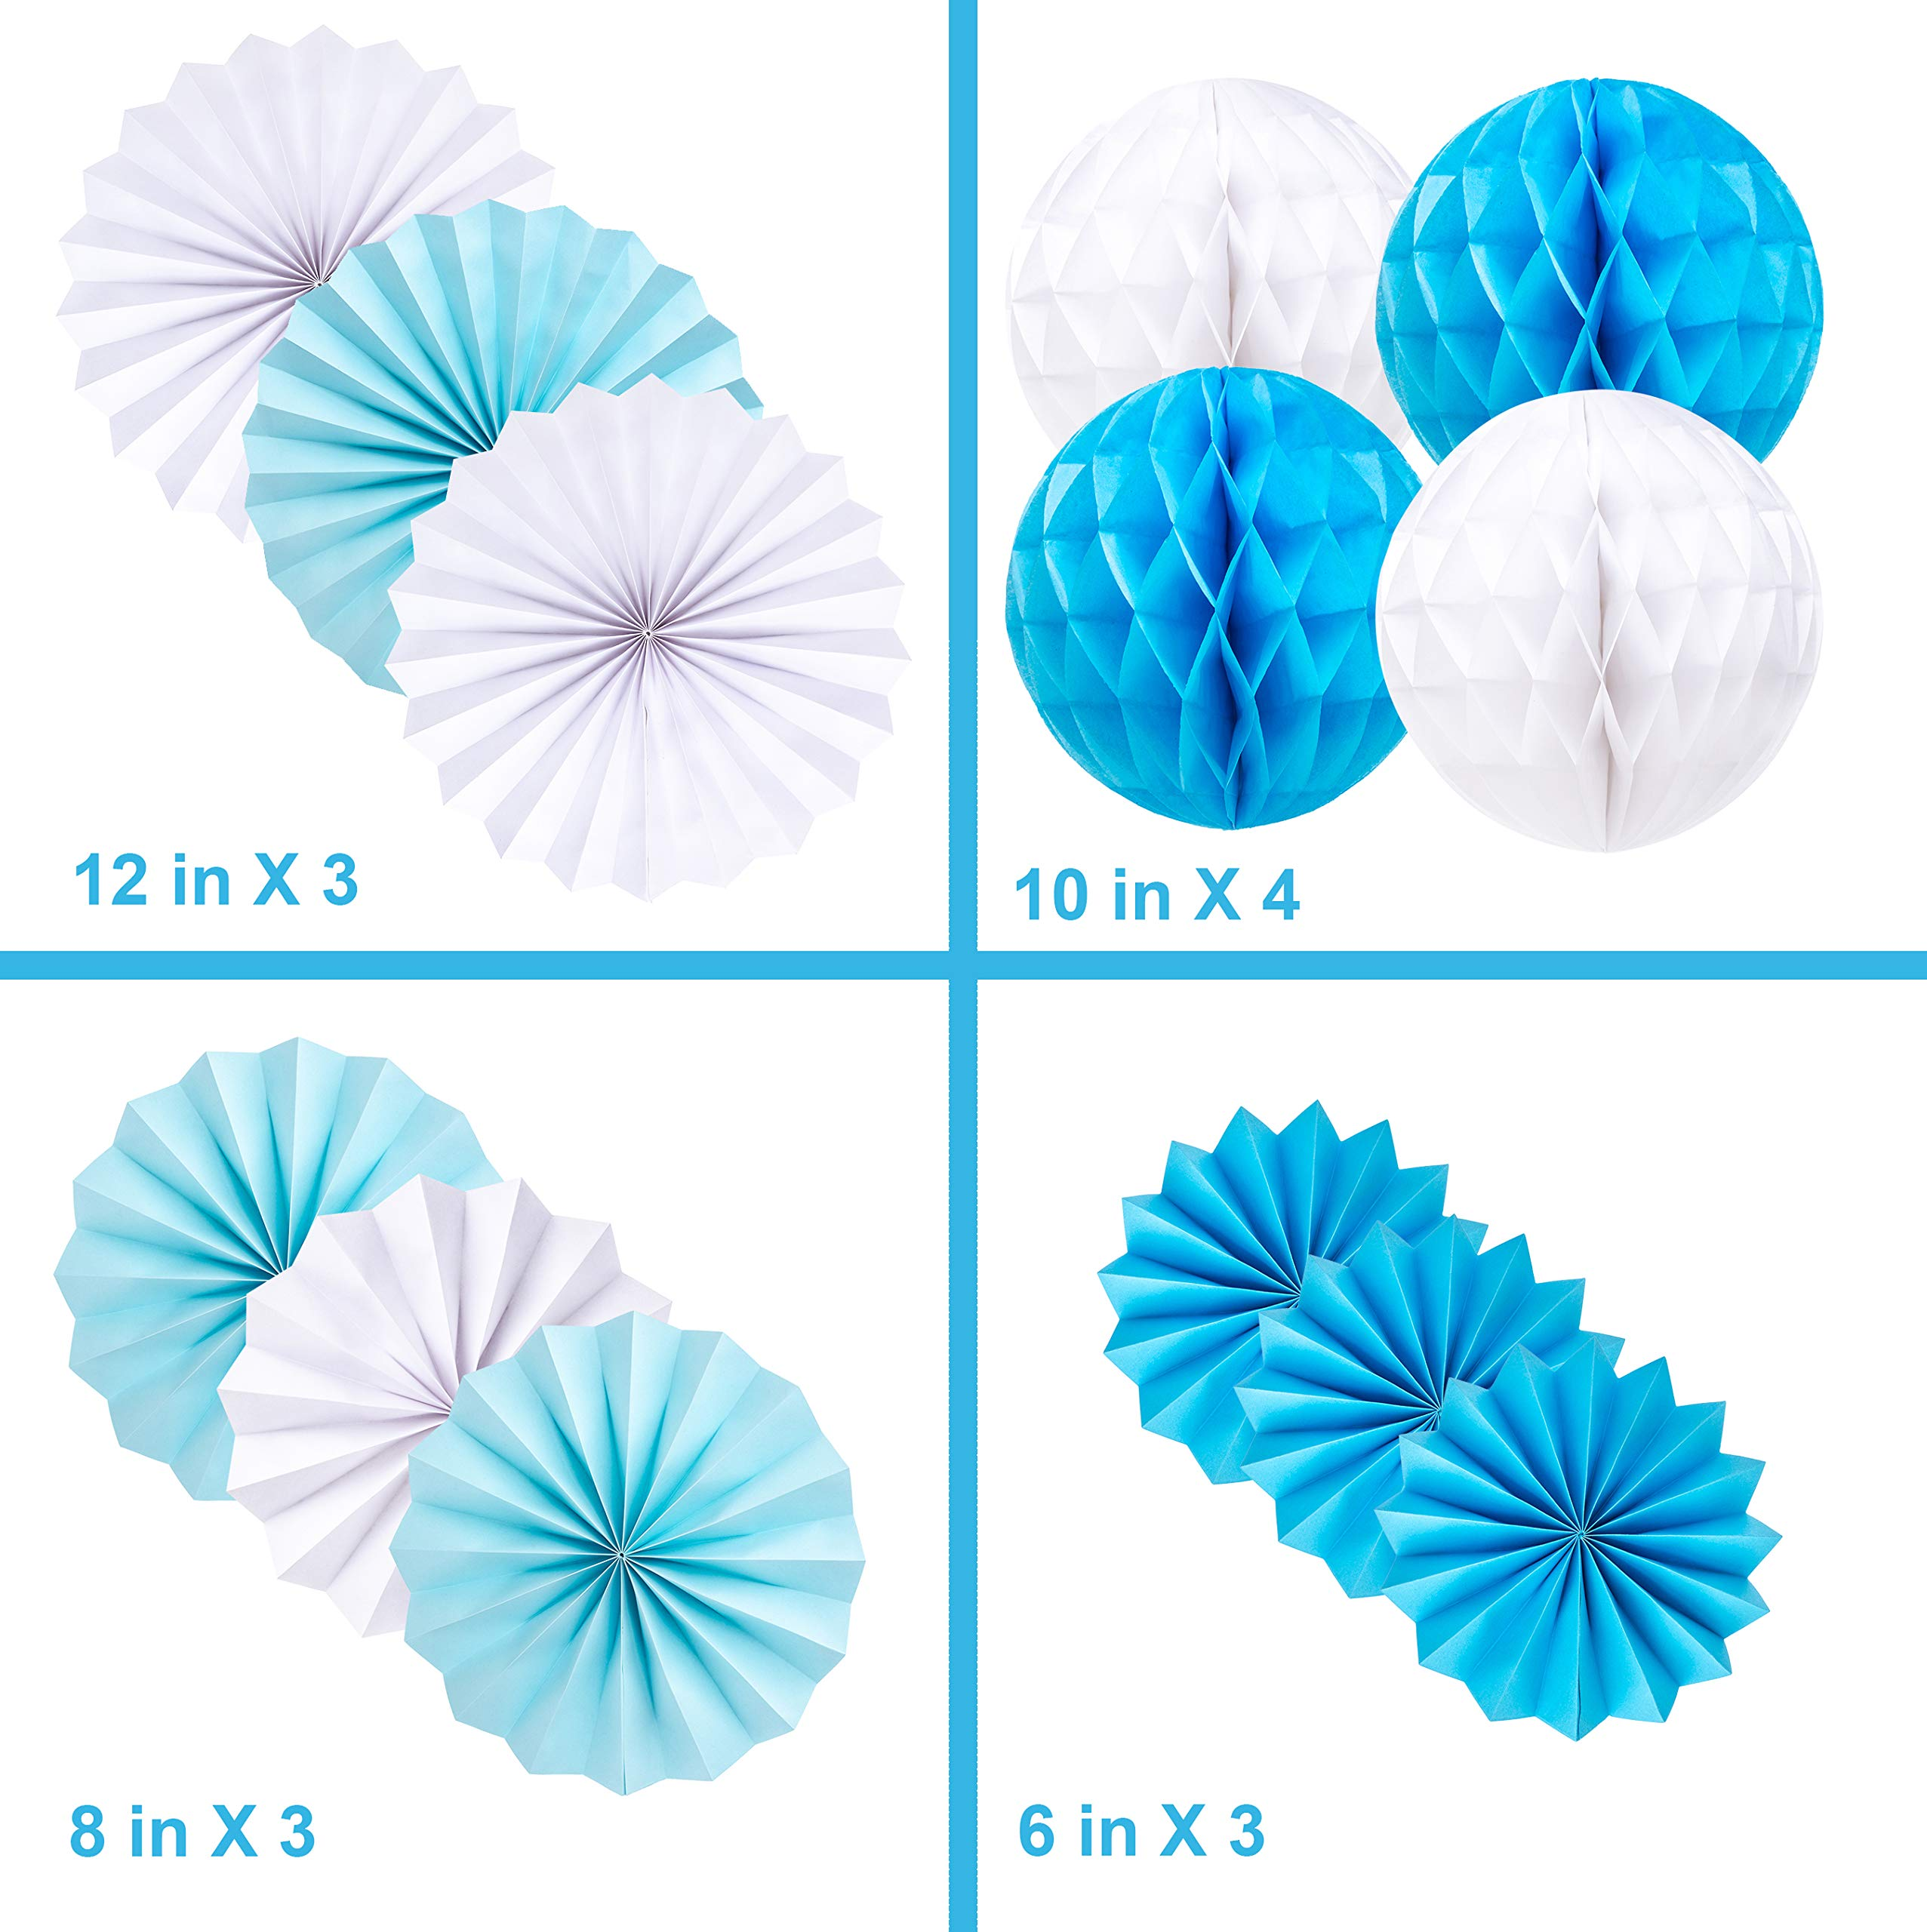 Premium baby shower decorations for boy Kit | It's a boy baby shower decorations with striped tablecloth, 2 banners, paper fans, and honeycomb balls | complete baby shower set for a beautiful baby boy by TeeMoo (Image #3)